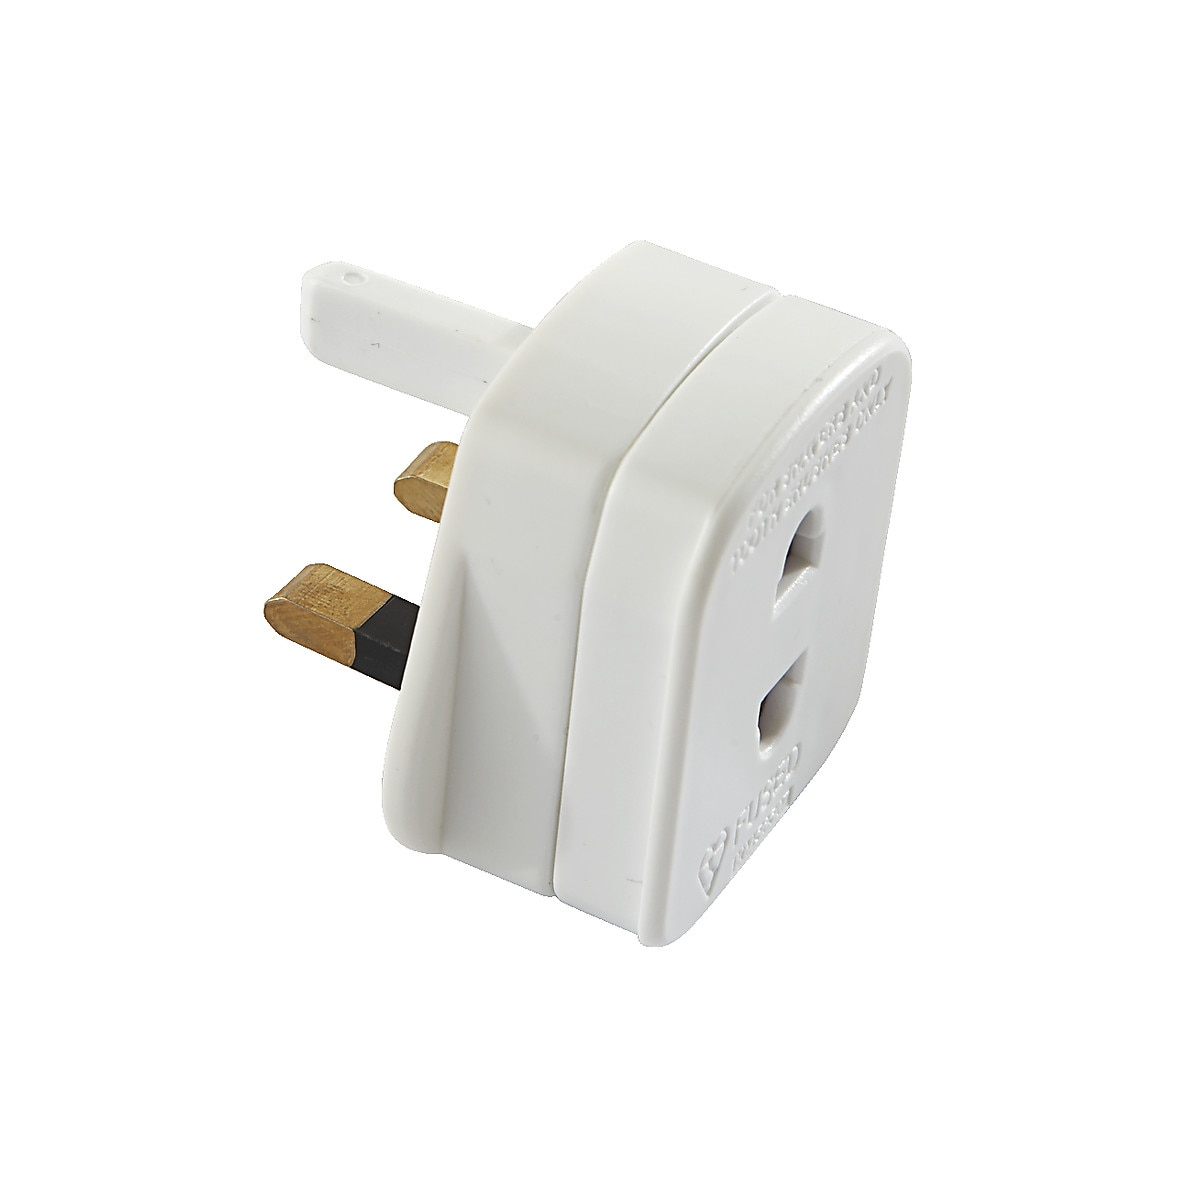 Masterplug Shaver Adapter